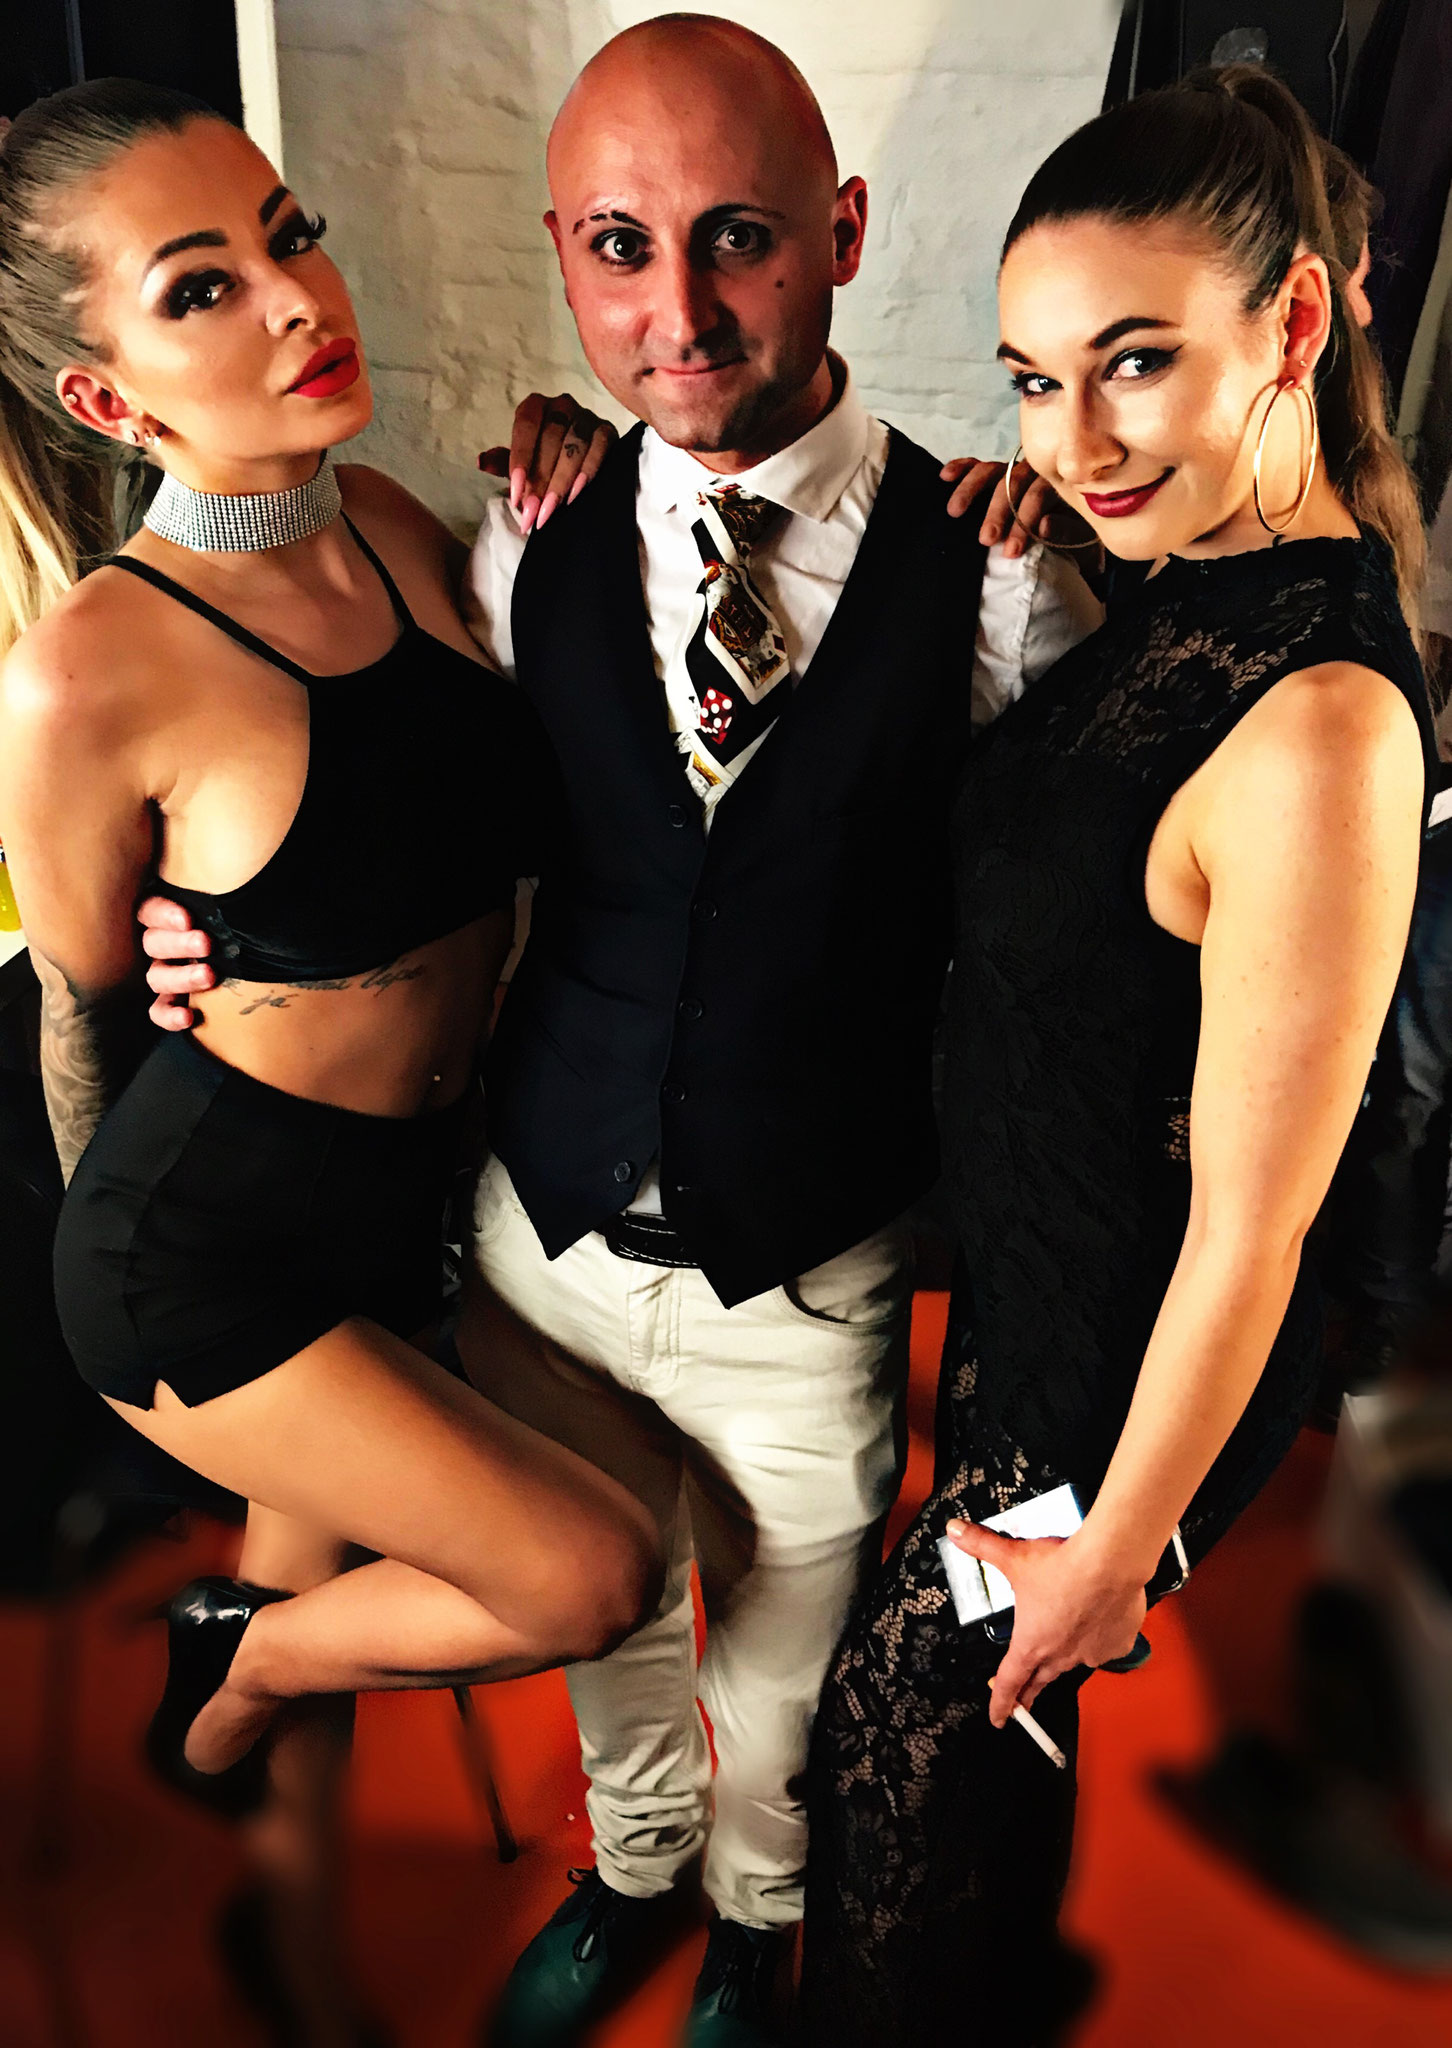 Johnny Diablo - Lina Diamond & Katja Krasavice